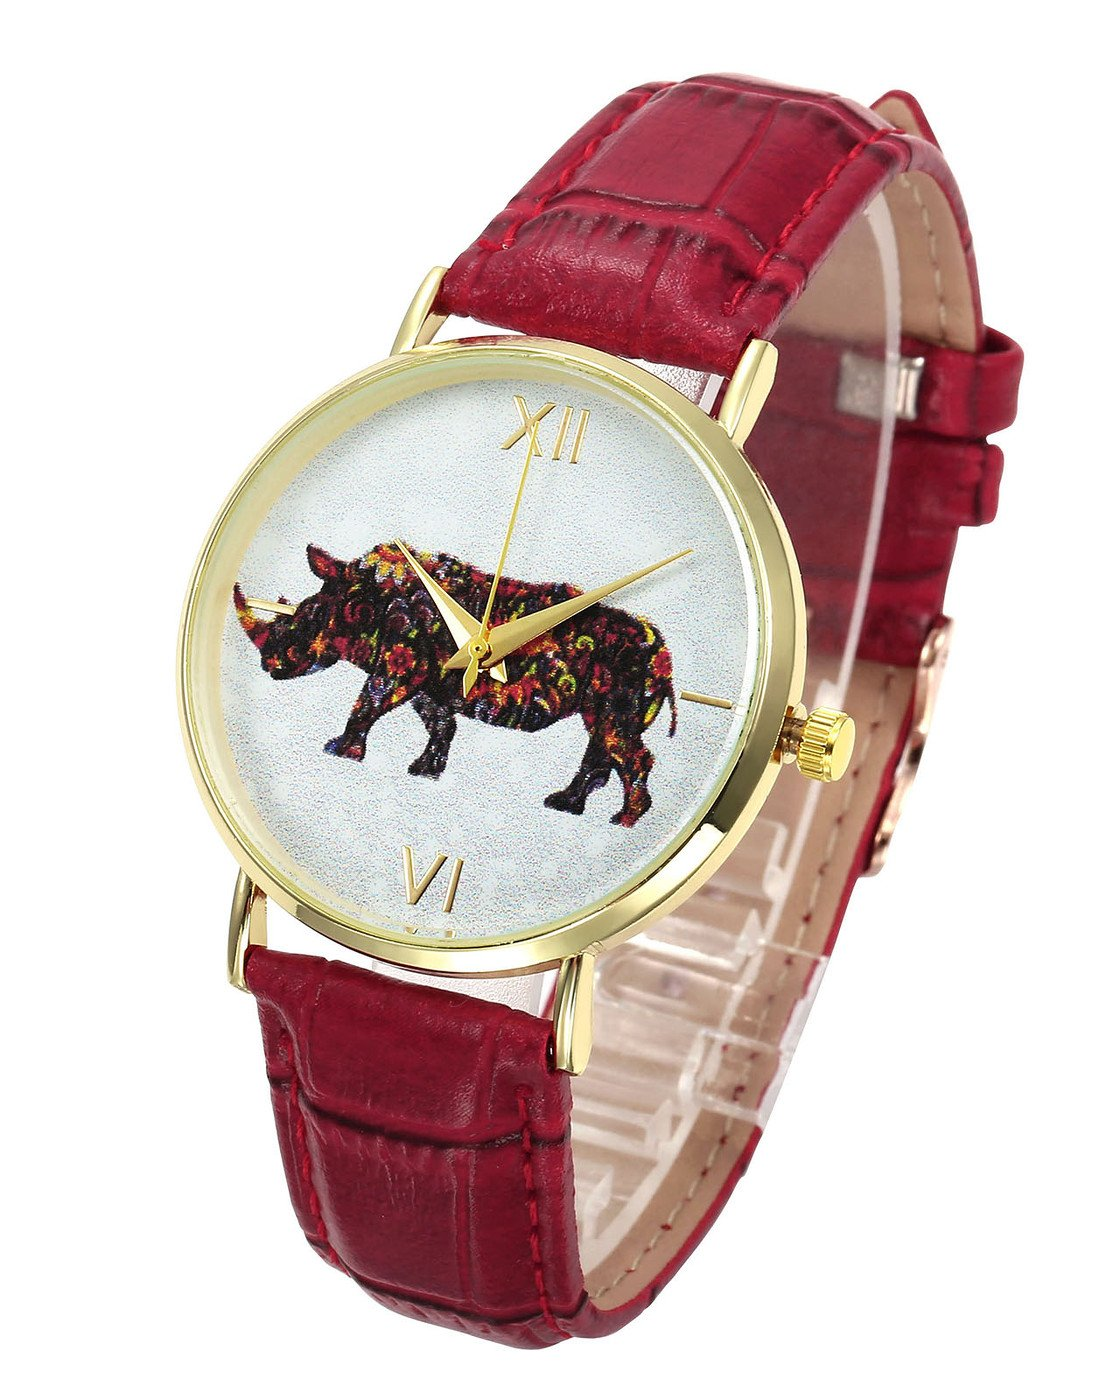 Top Plaza Cute Lovely Colorful Animal Pattern Dial PU Leather Band Dress Analog Quatz Wrist Watch Golden Case No Number Casual Watches for Womens Ladies(Red-Rhinoceros)